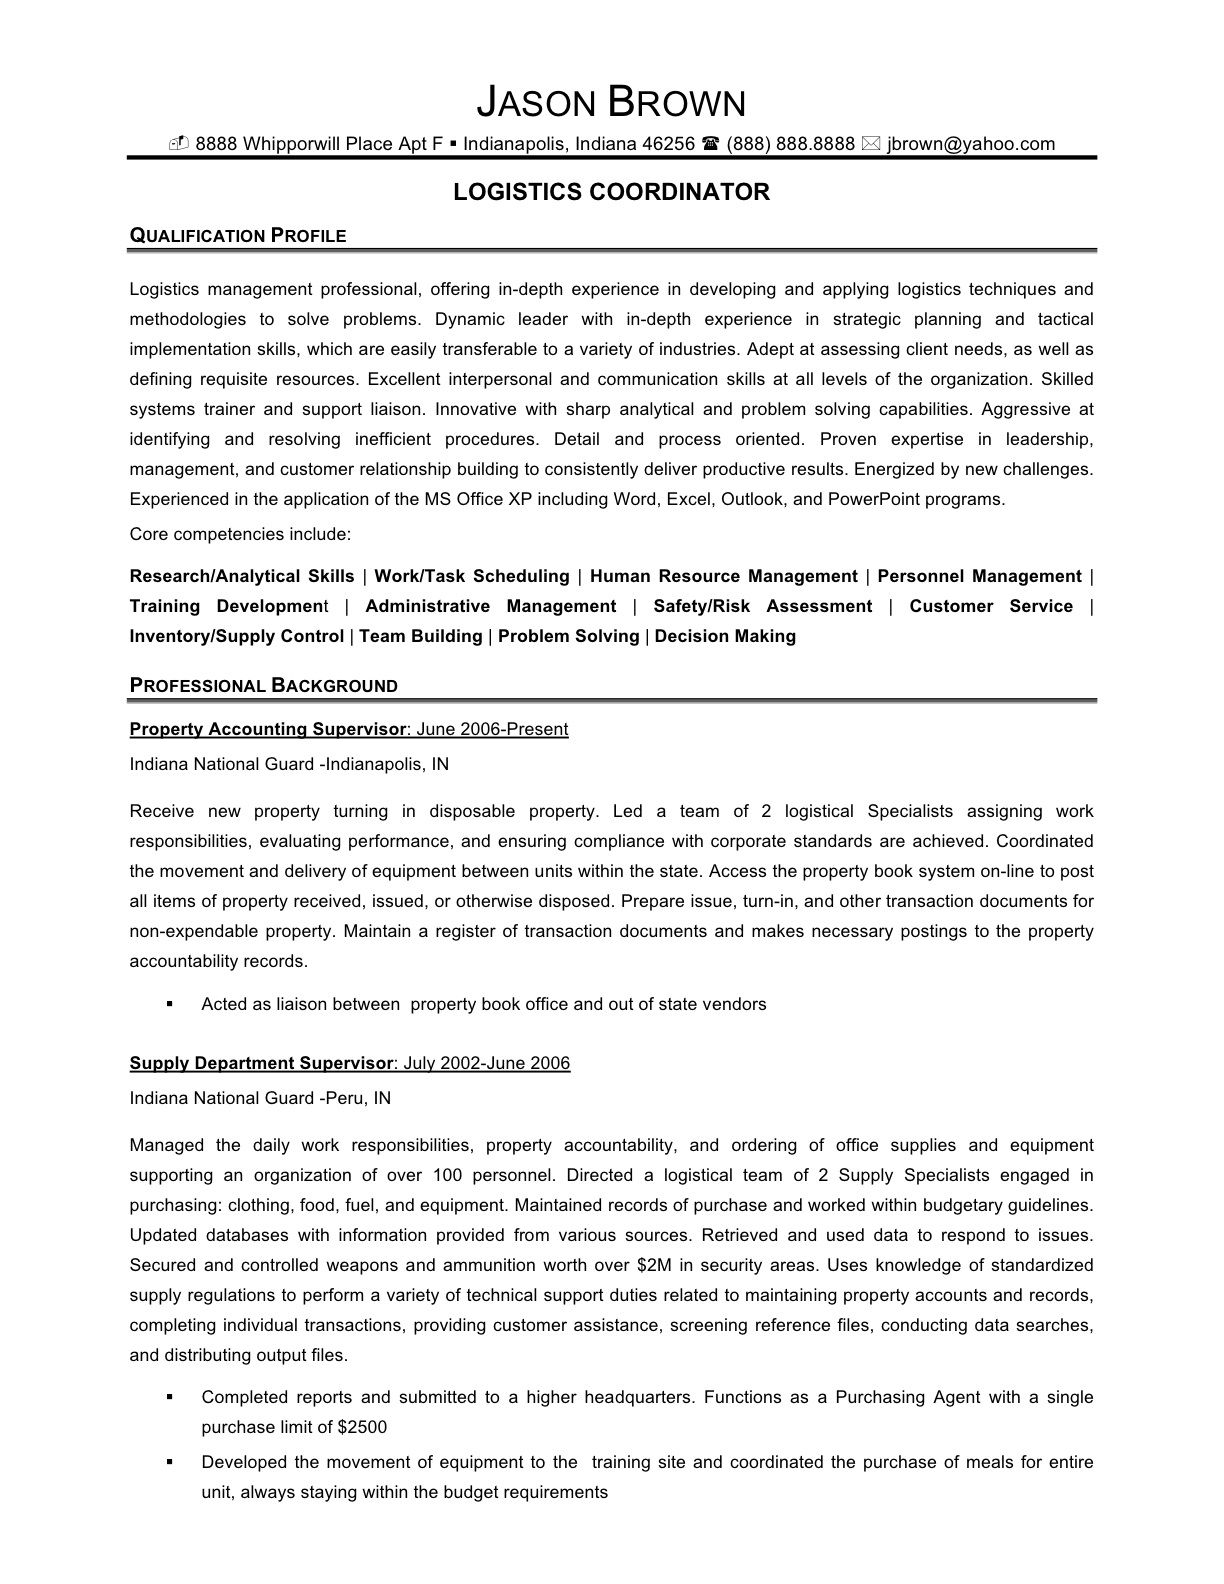 senior logistic management resume – Logistics Resume Objective